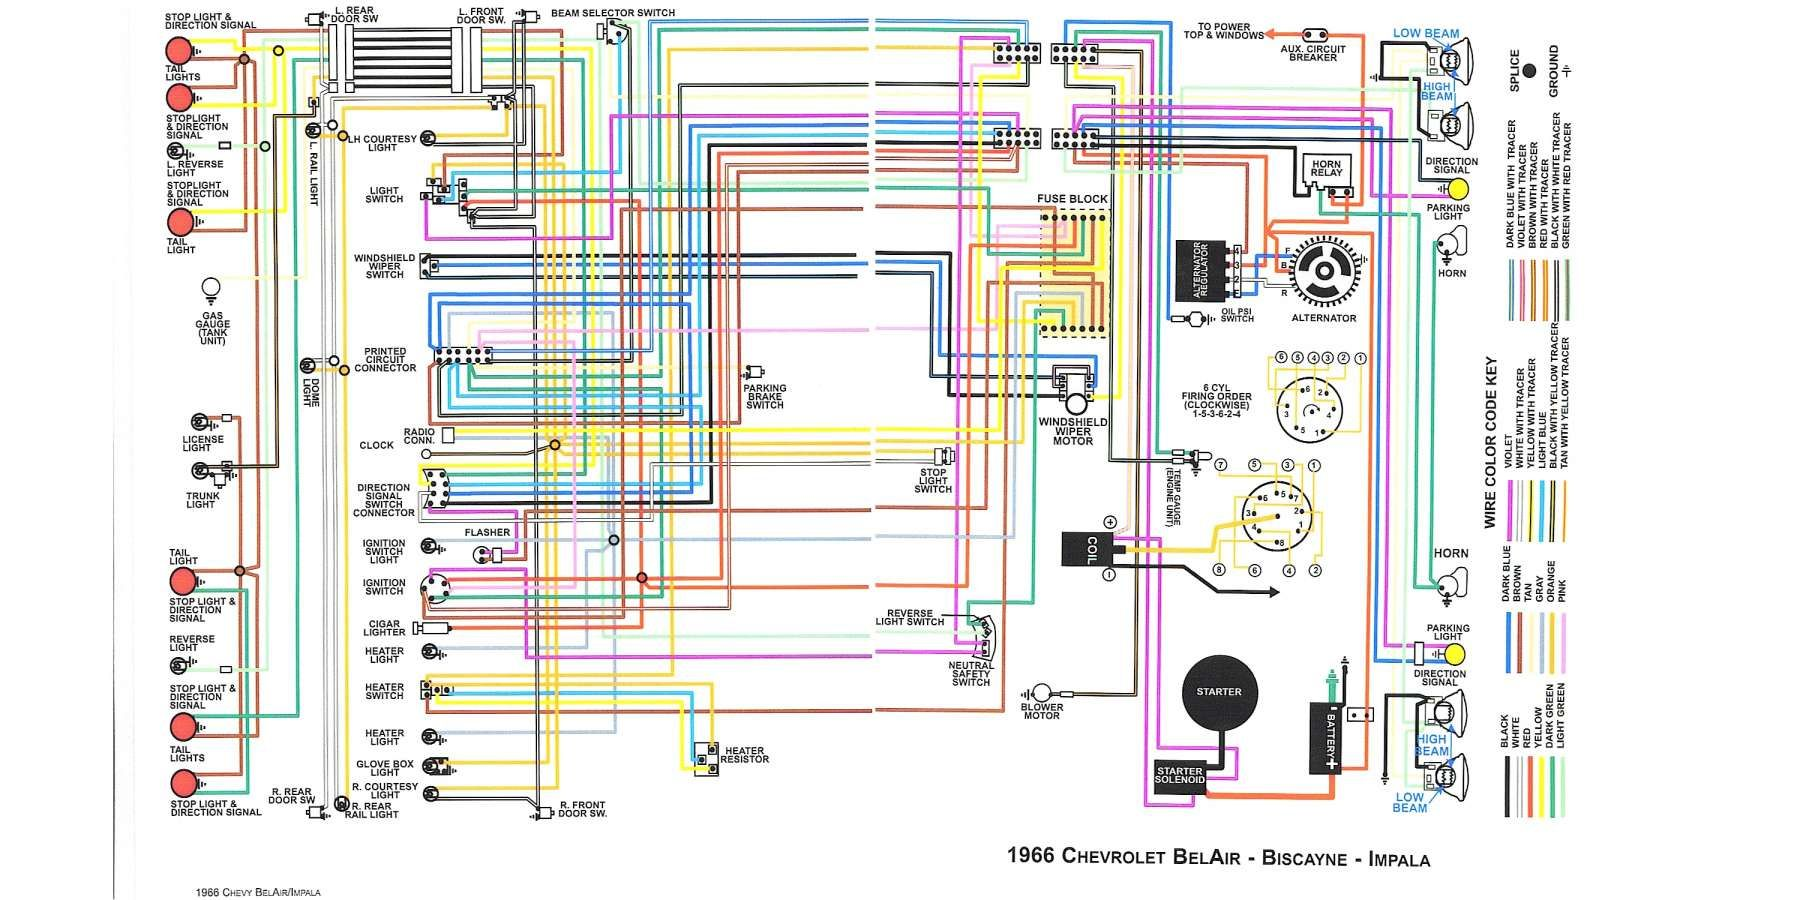 68 camaro ignition wiring harness diagram - wiring diagram mile-note -  mile-note.agriturismoduemadonne.it  agriturismoduemadonne.it